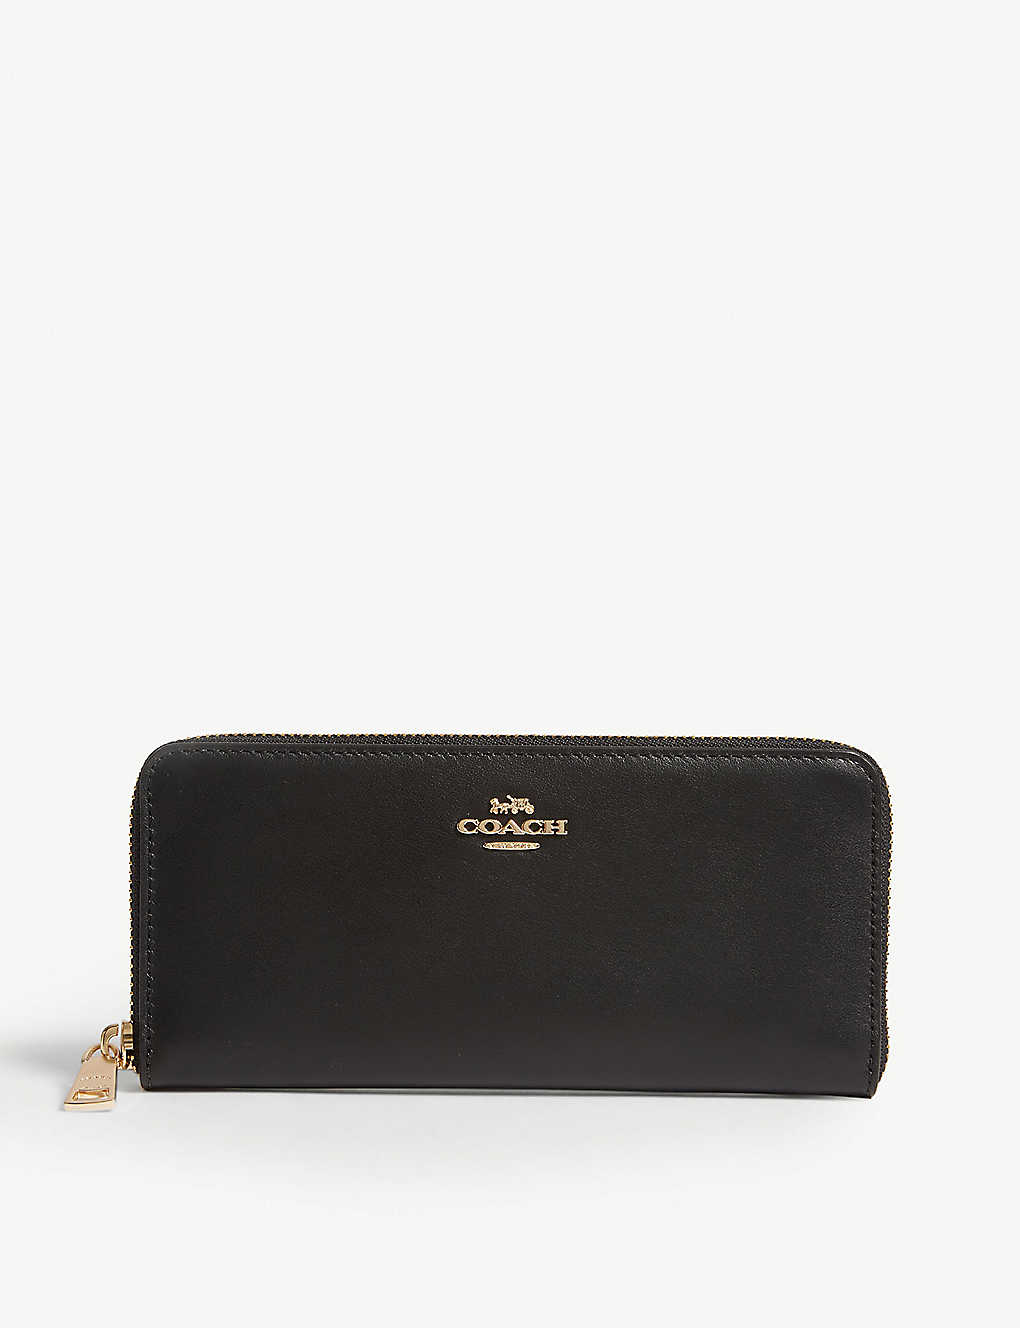 COACH: Leather zip-around wallet